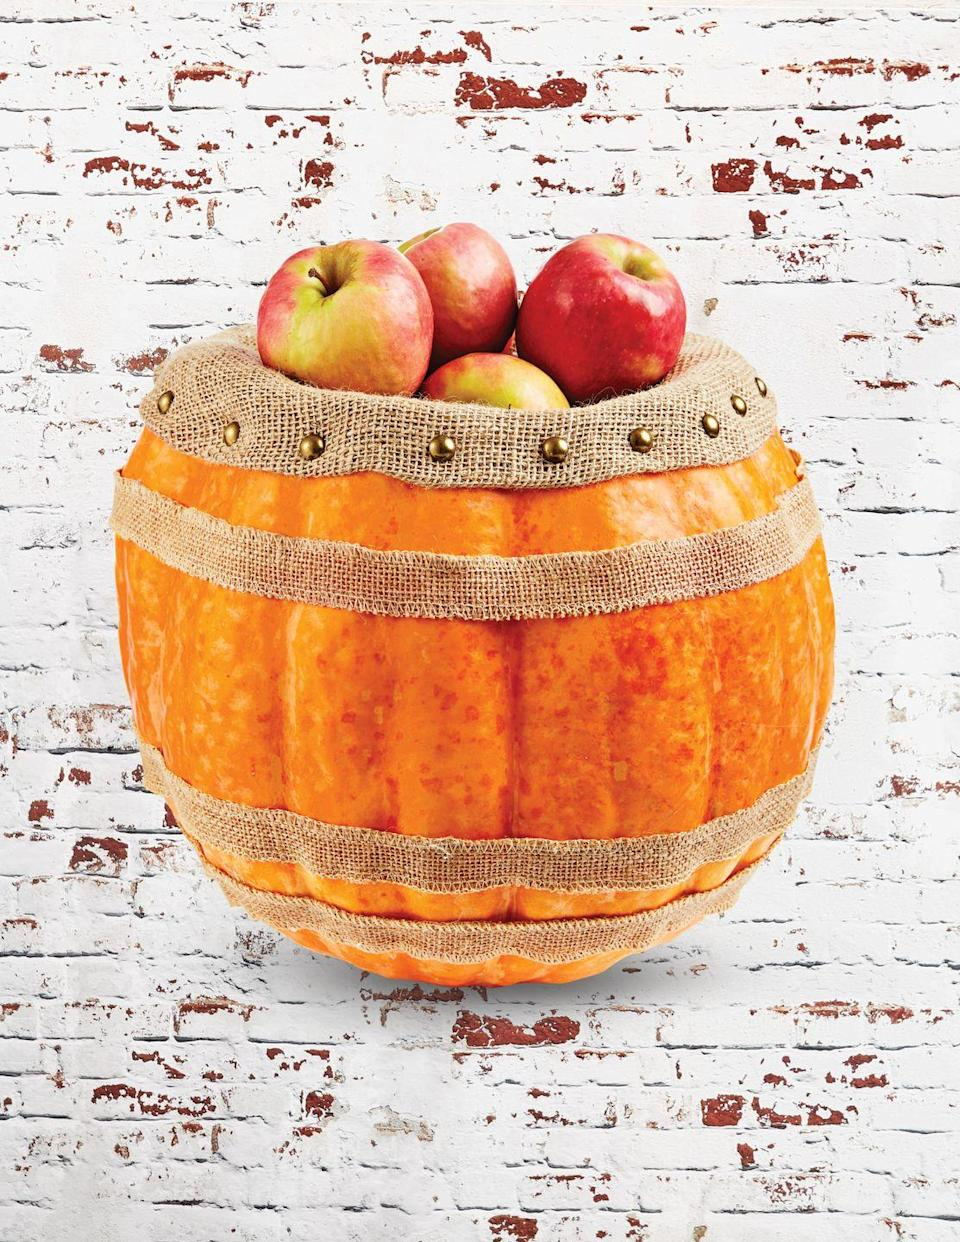 """<p>Talk about adorable fall porch decor. This """"barrel"""" is the perfect way to show off your <a href=""""https://www.countryliving.com/life/travel/g2623/apple-picking/"""" rel=""""nofollow noopener"""" target=""""_blank"""" data-ylk=""""slk:apple-picking"""" class=""""link rapid-noclick-resp"""">apple-picking</a> treasures!</p><p><strong>Make the barrel: </strong>Cut off the top quarter of an extra-large pumpkin; scoop out pulp and seeds. Hot-glue three strips of burlap ribbon around outside of pumpkin. Stuff pumpkin three-fourths full with Poly-Fil. Insert burlap fabric into the opening and fold over outside of pumpkin; hold in place with upholstery tacks. Fill with apples or desired items. </p>"""